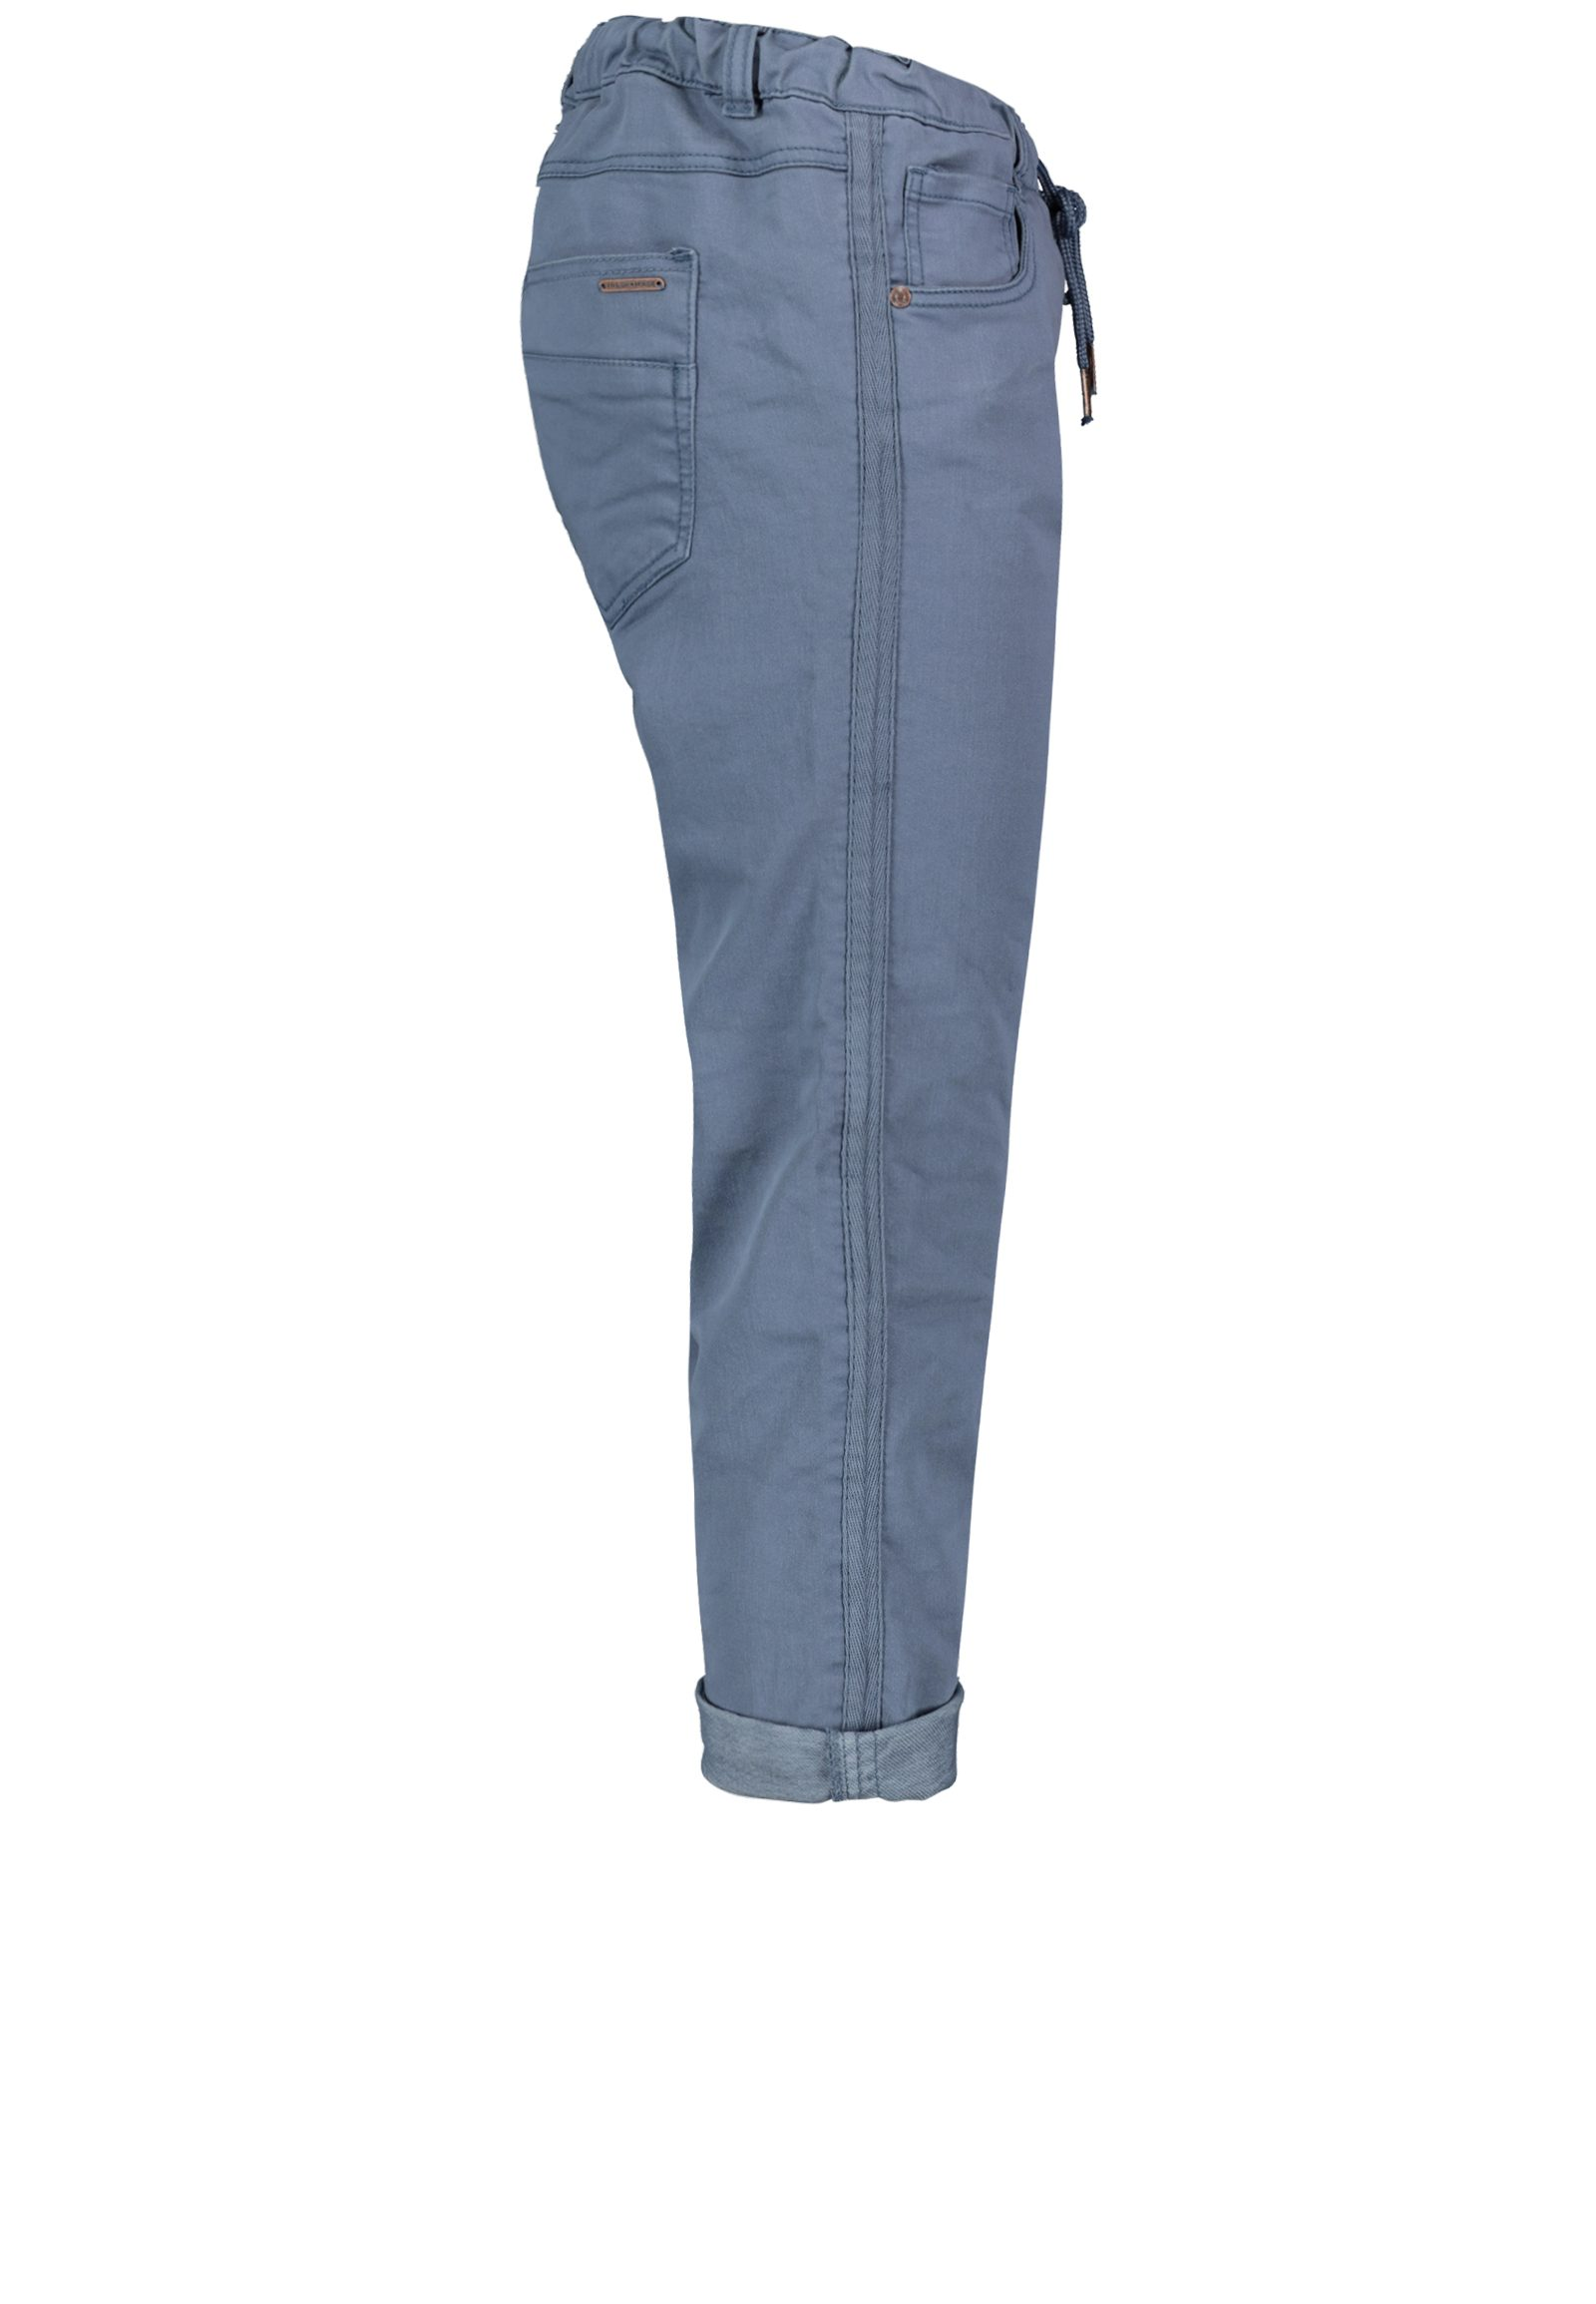 Vorschau: Caprihose in Sweat Denim Optik